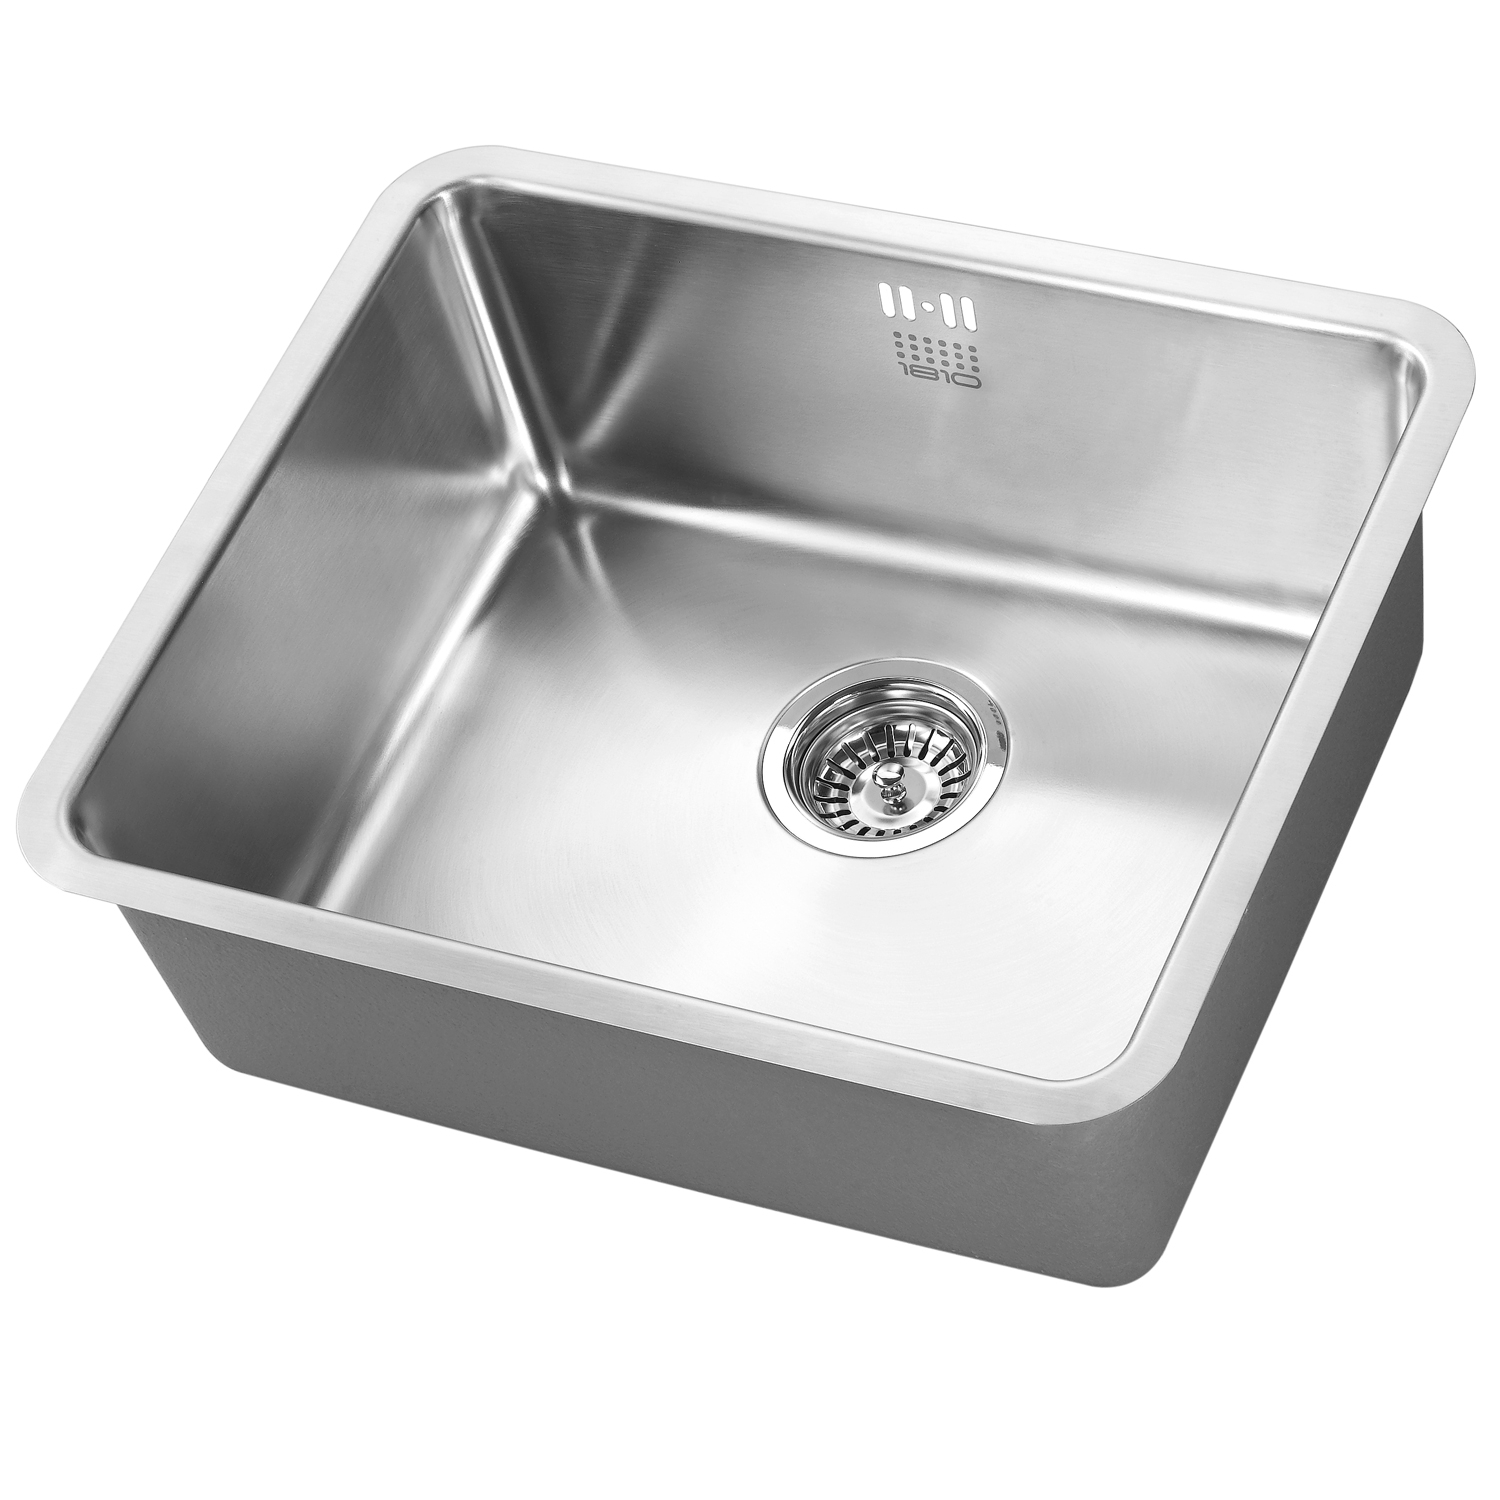 The 1810 Company Luxsouno25 480U 1.0 Bowl Kitchen Sink - Stainless Steel